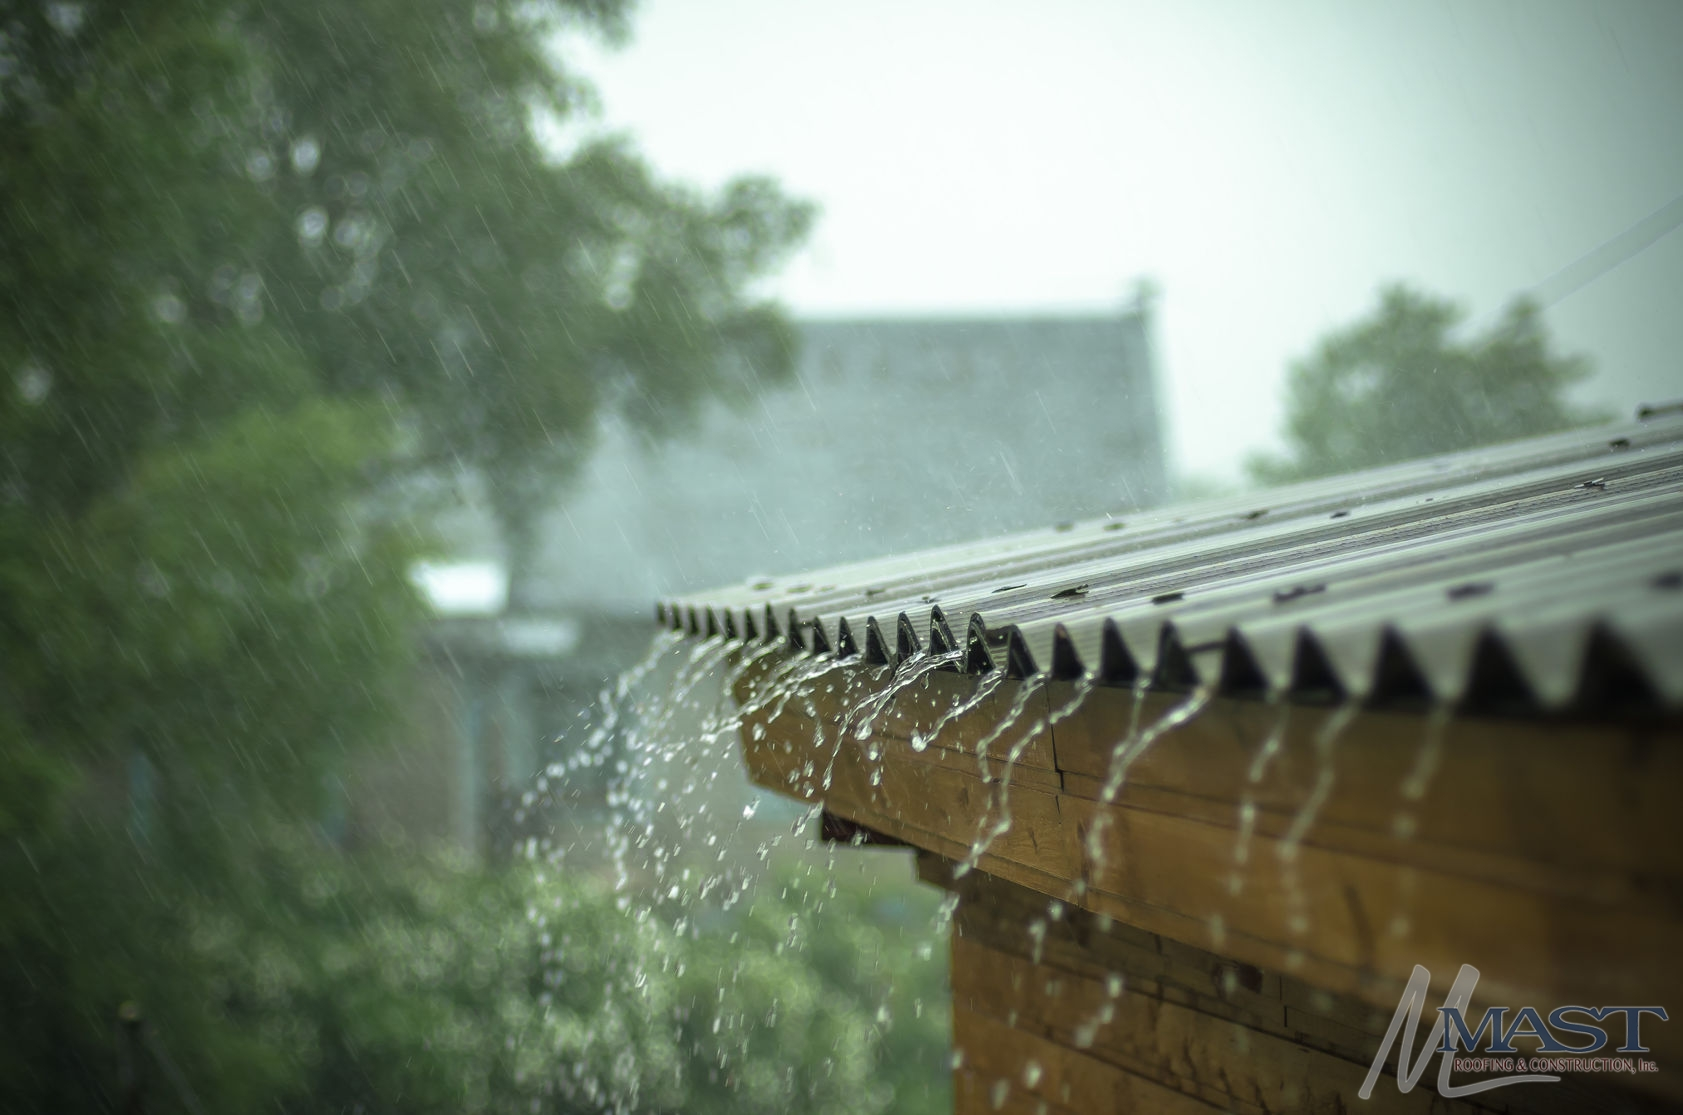 Our Roofers Can Make Sure Your Roof Is Prepared For Storms